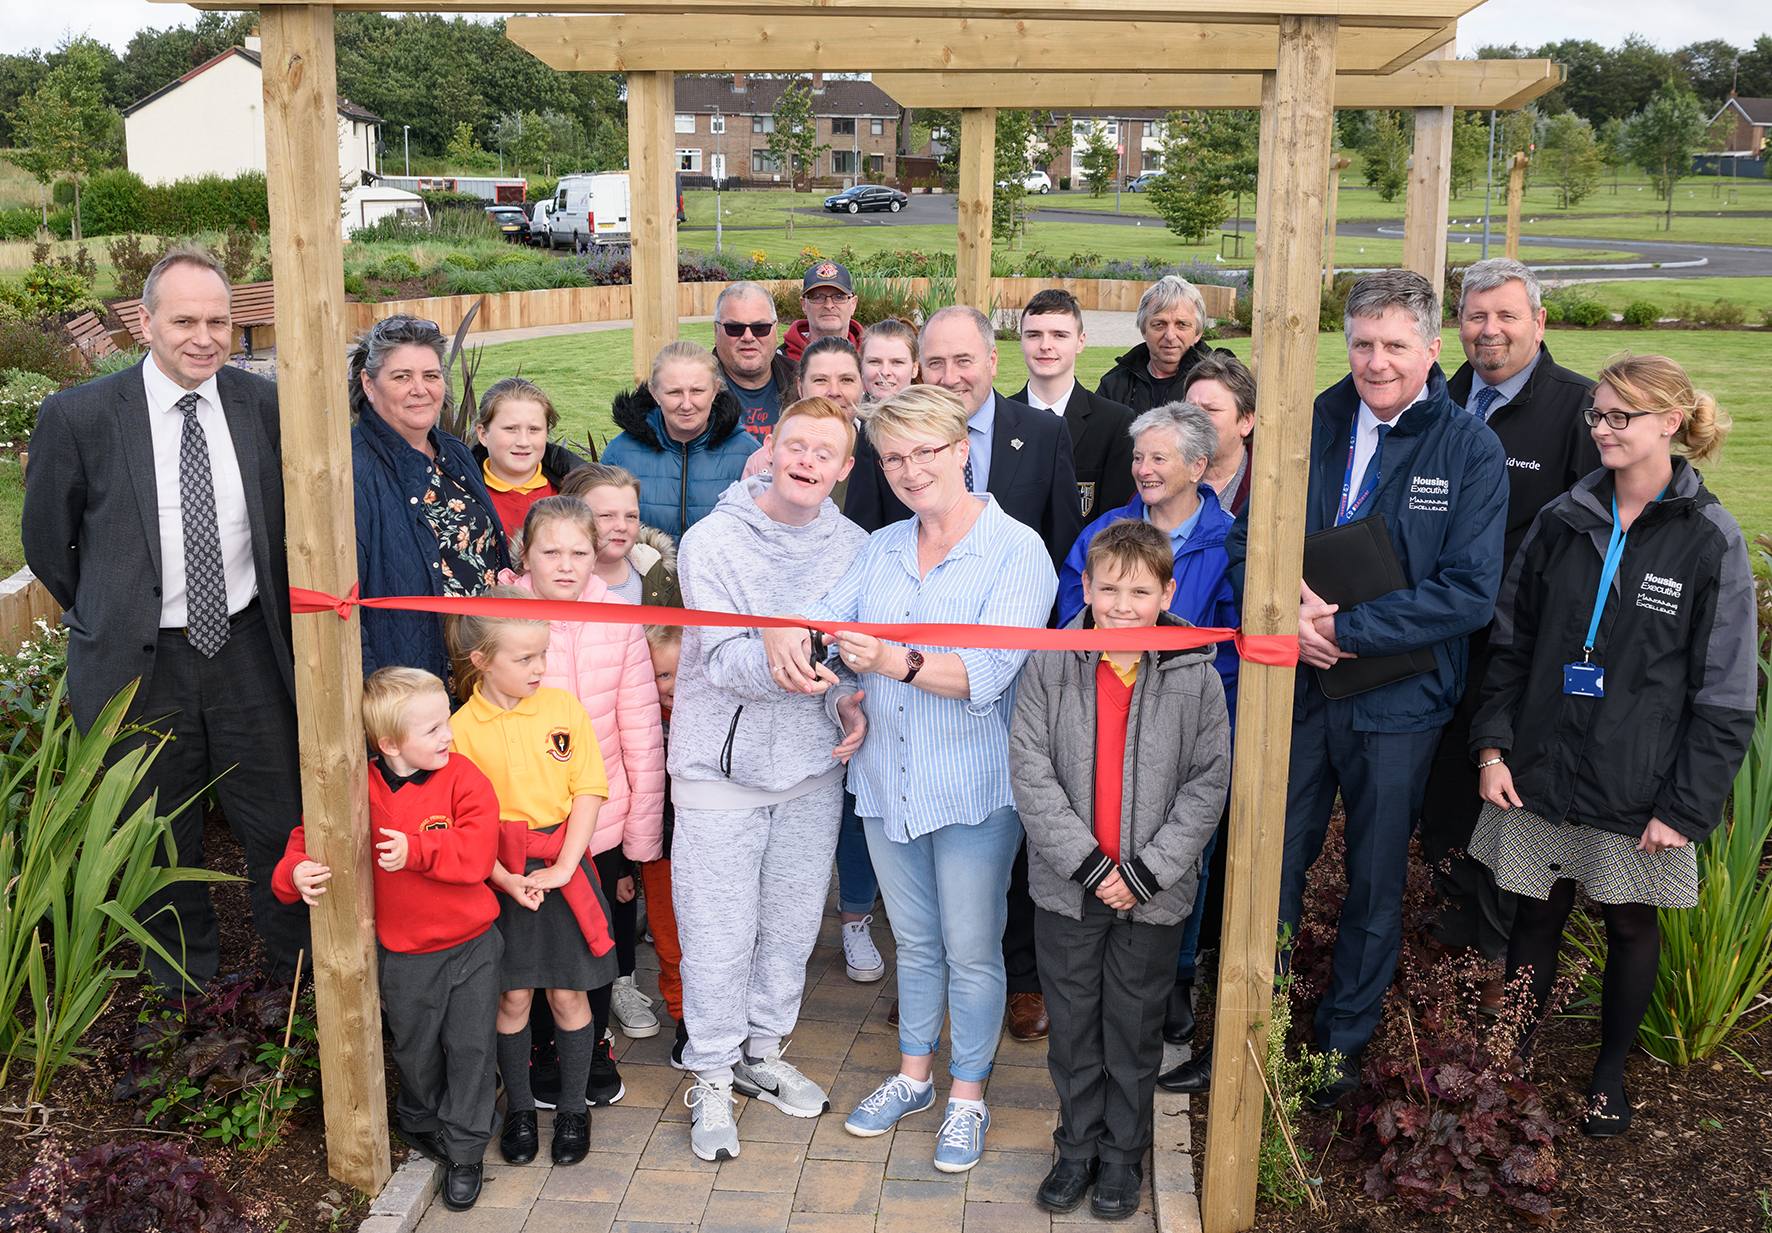 A group of adults and children open a new community garden.